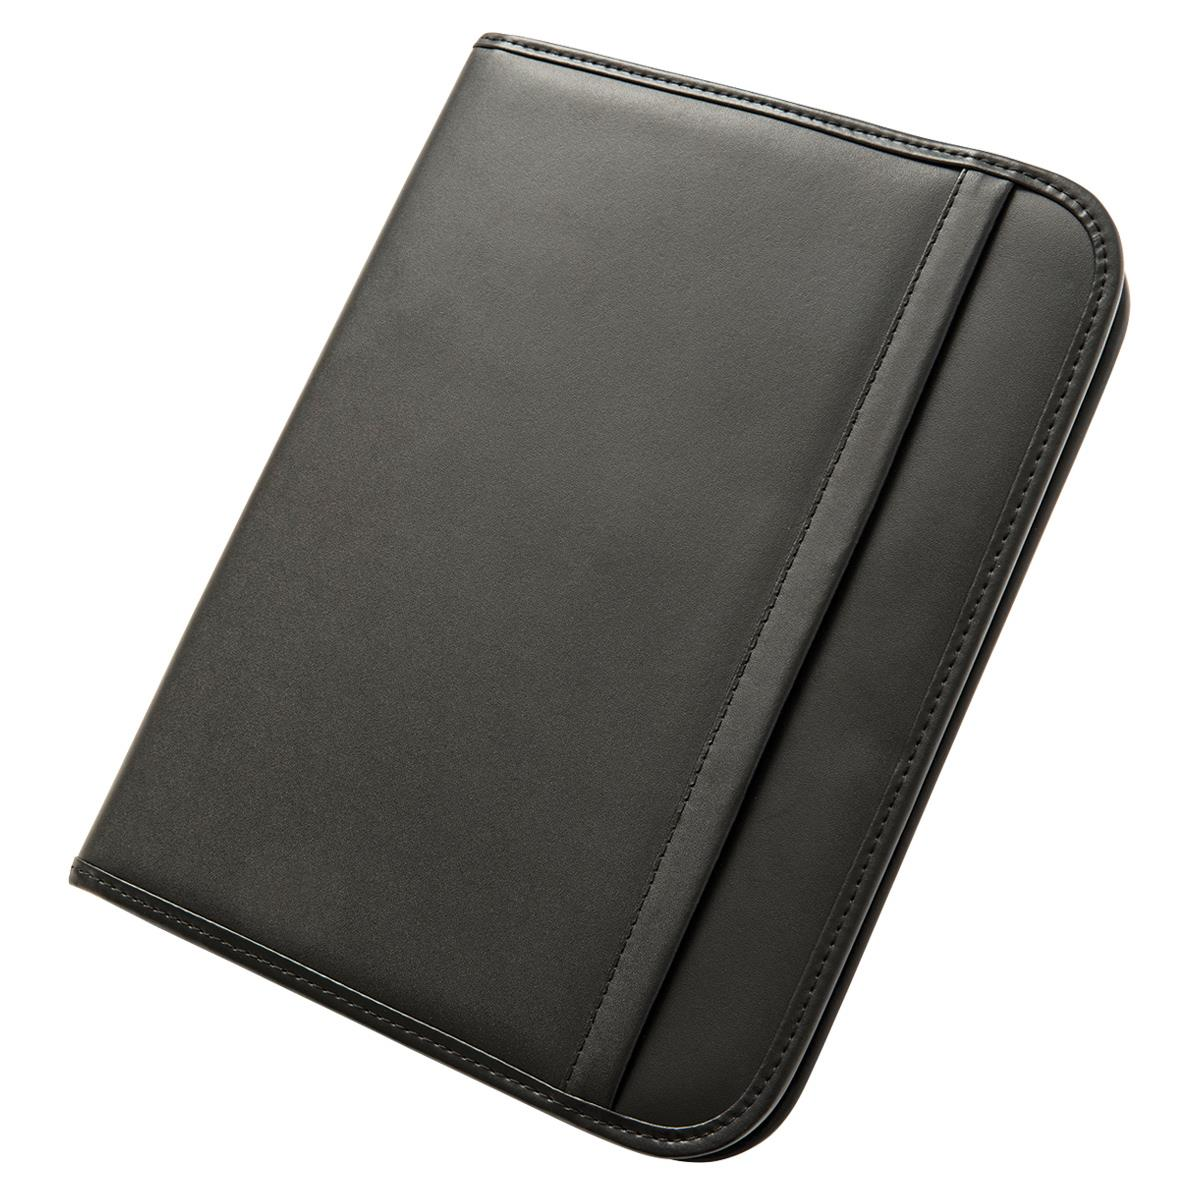 A4 Leather Tablet Compendium